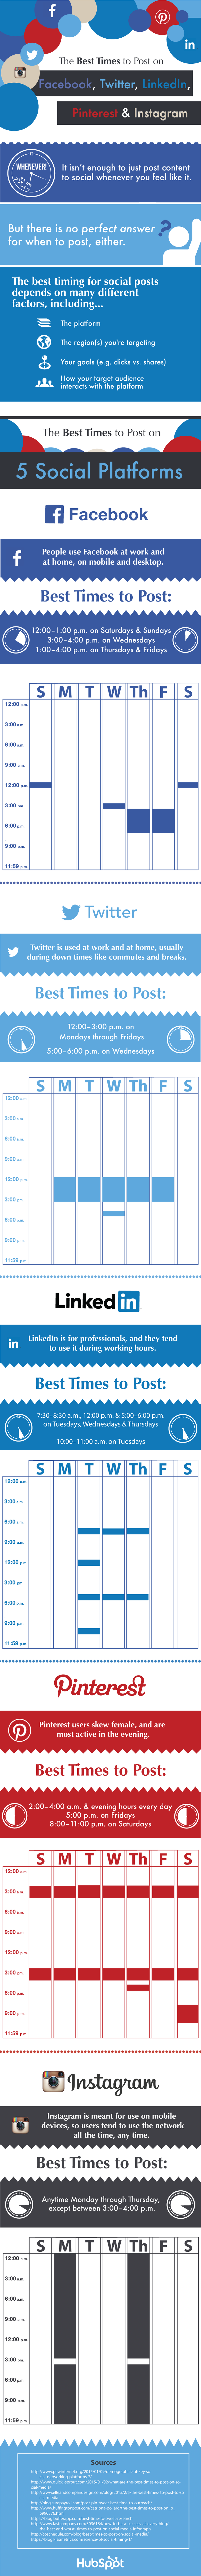 Here's the 2016 update - The Best Times to Post on Facebook, Twitter, LinkedIn & Other Social Media Sites. Based on solid research and common sense, this is a great infographic!  Use this when you're setting up LI, FB, and Twitter posts in your @Venntive Social platform, integrated with everything else you're doing with #MarketingAutomation and #CRM. [Infographic], via HubSpot.